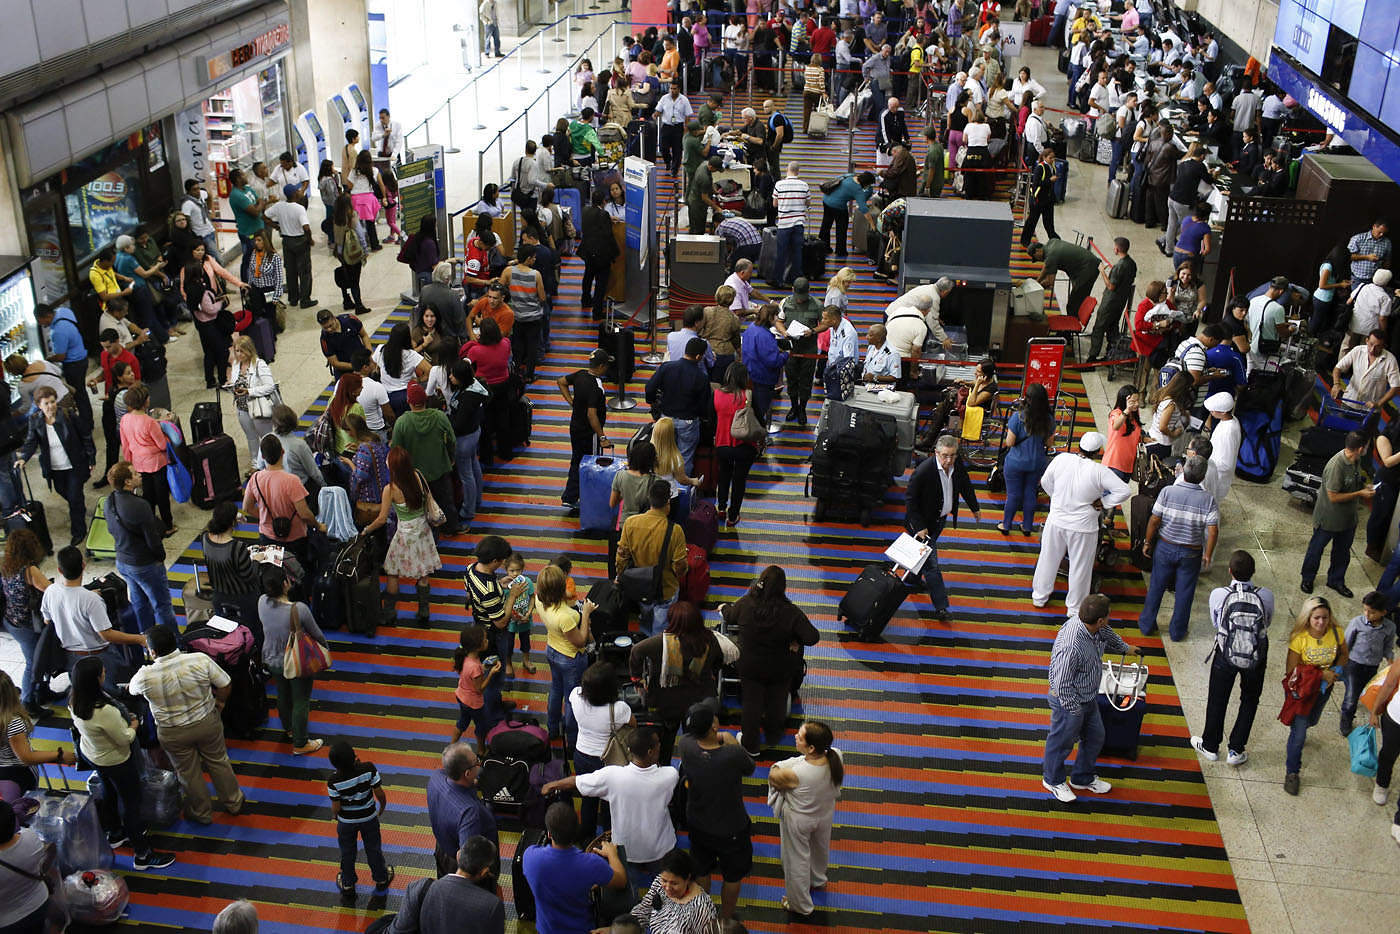 Passengers line up for the security checkpoint at Simon Bolivar airport in La Guaira, outside Caracas October 15, 2013. President Nicolas Maduro's government plans to use fingerprint machines at airports to try to root out no-shows who buy tickets to scam travel-related currency controls without even flying, in the latest symptom of Venezuela's economic chaos. REUTERS/Carlos Garcia Rawlins (VENEZUELA - Tags: POLITICS)